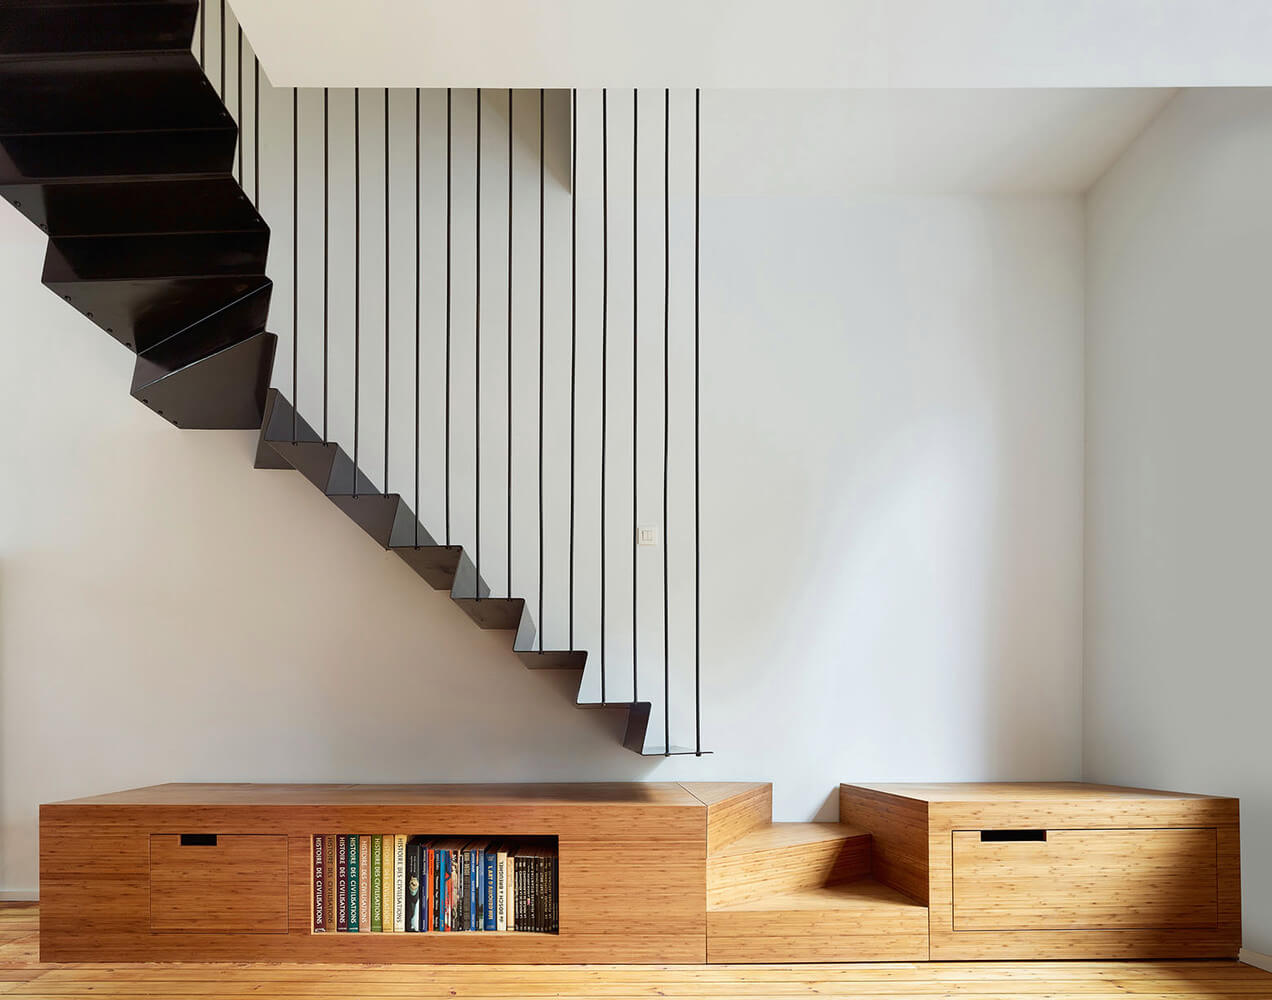 A suspended staircase can really make a statement